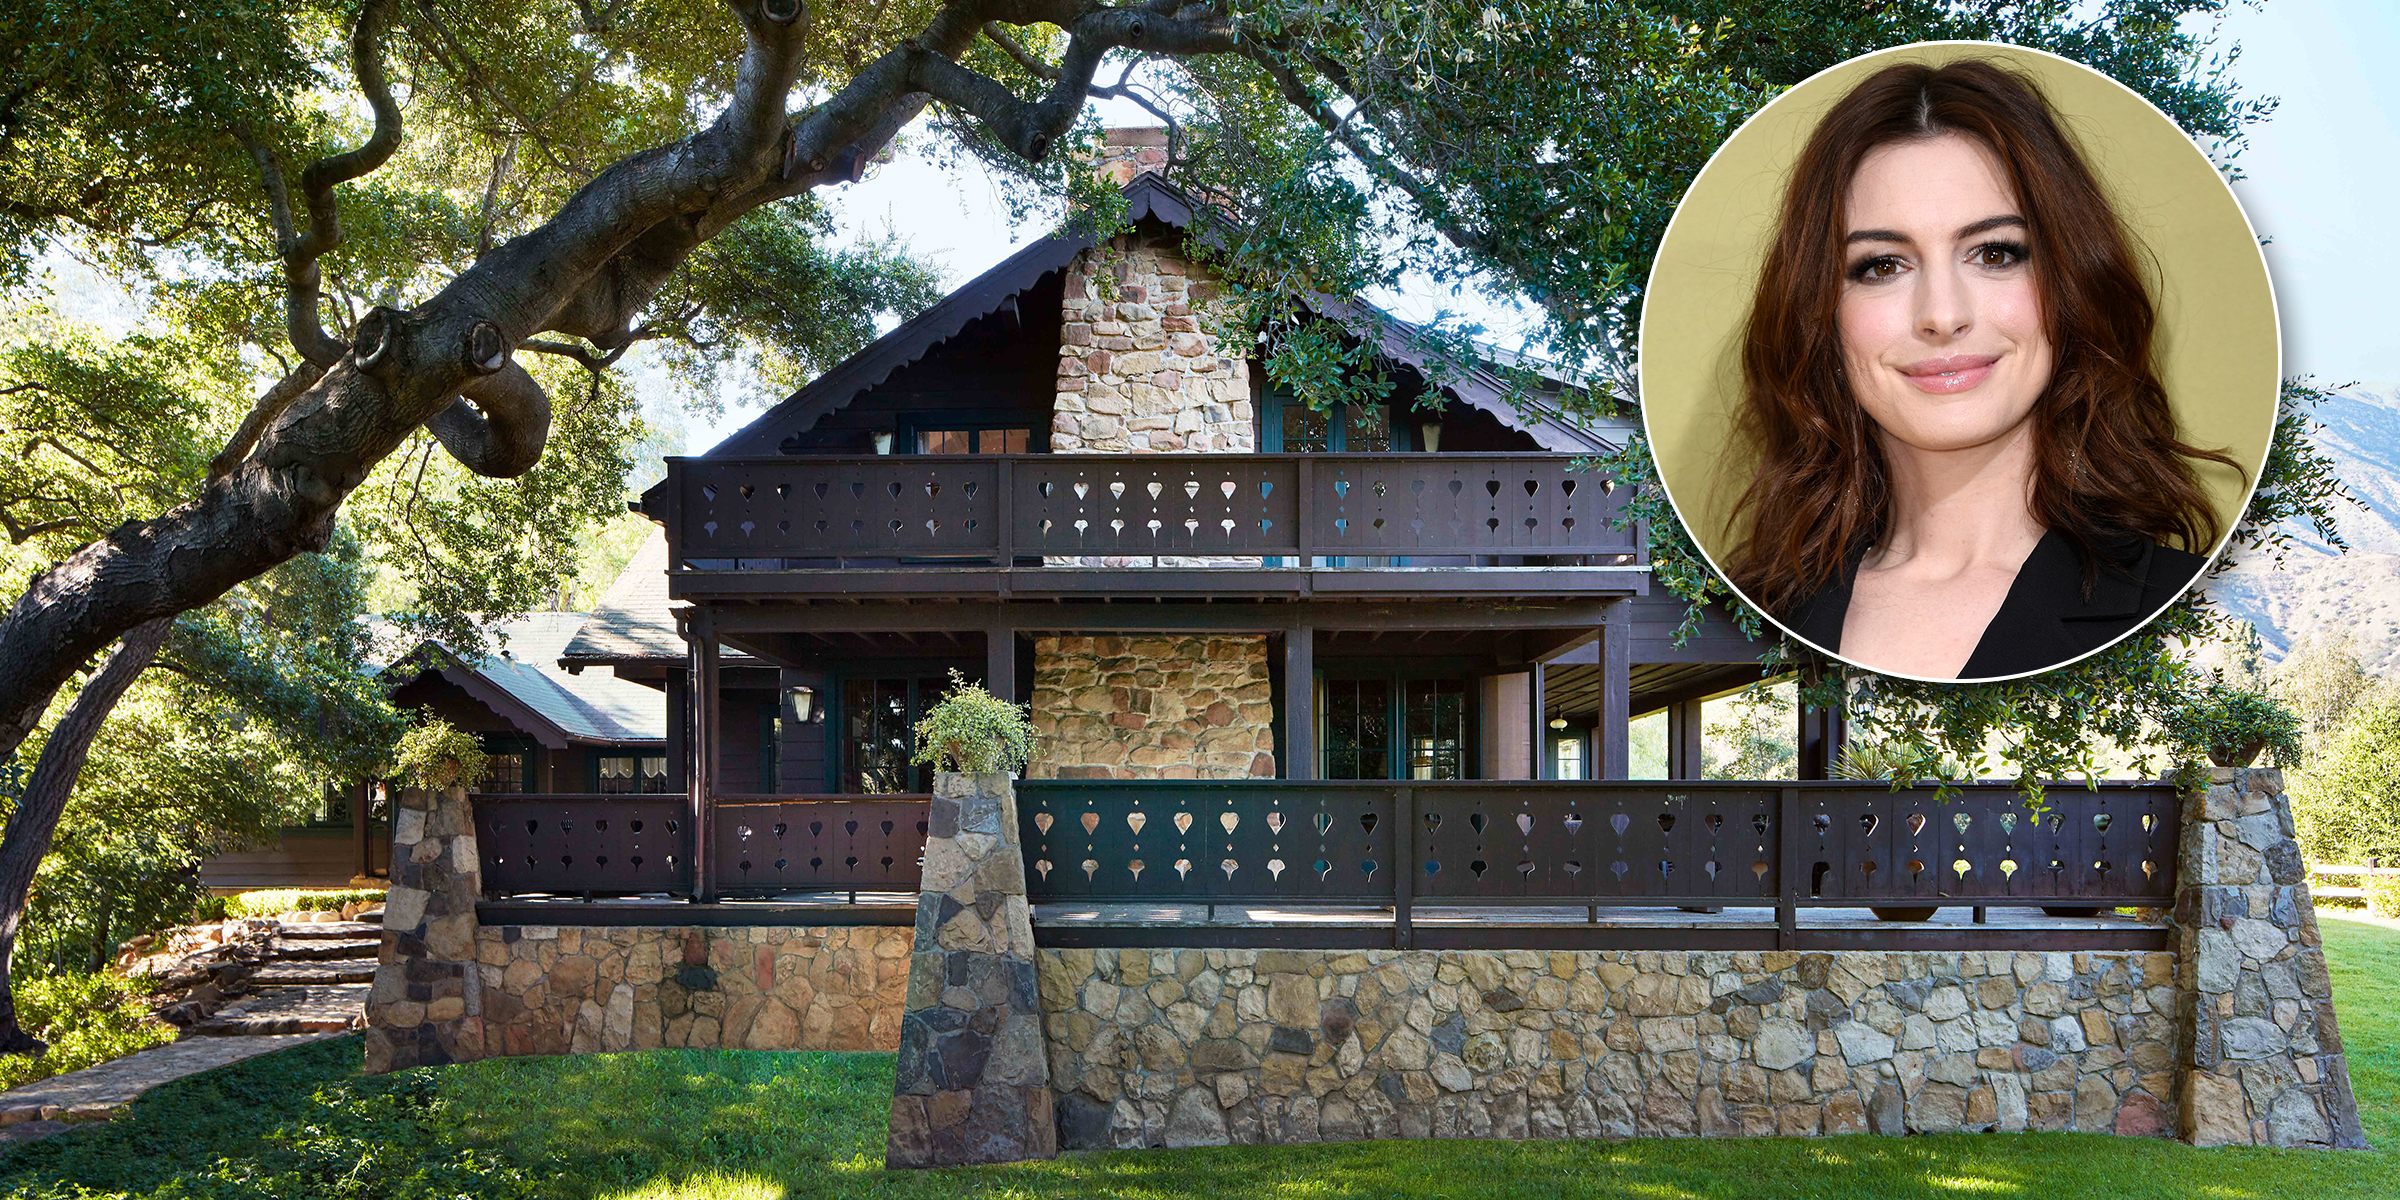 Anne Hathaway's charming California country home is straight out of a fairy tale